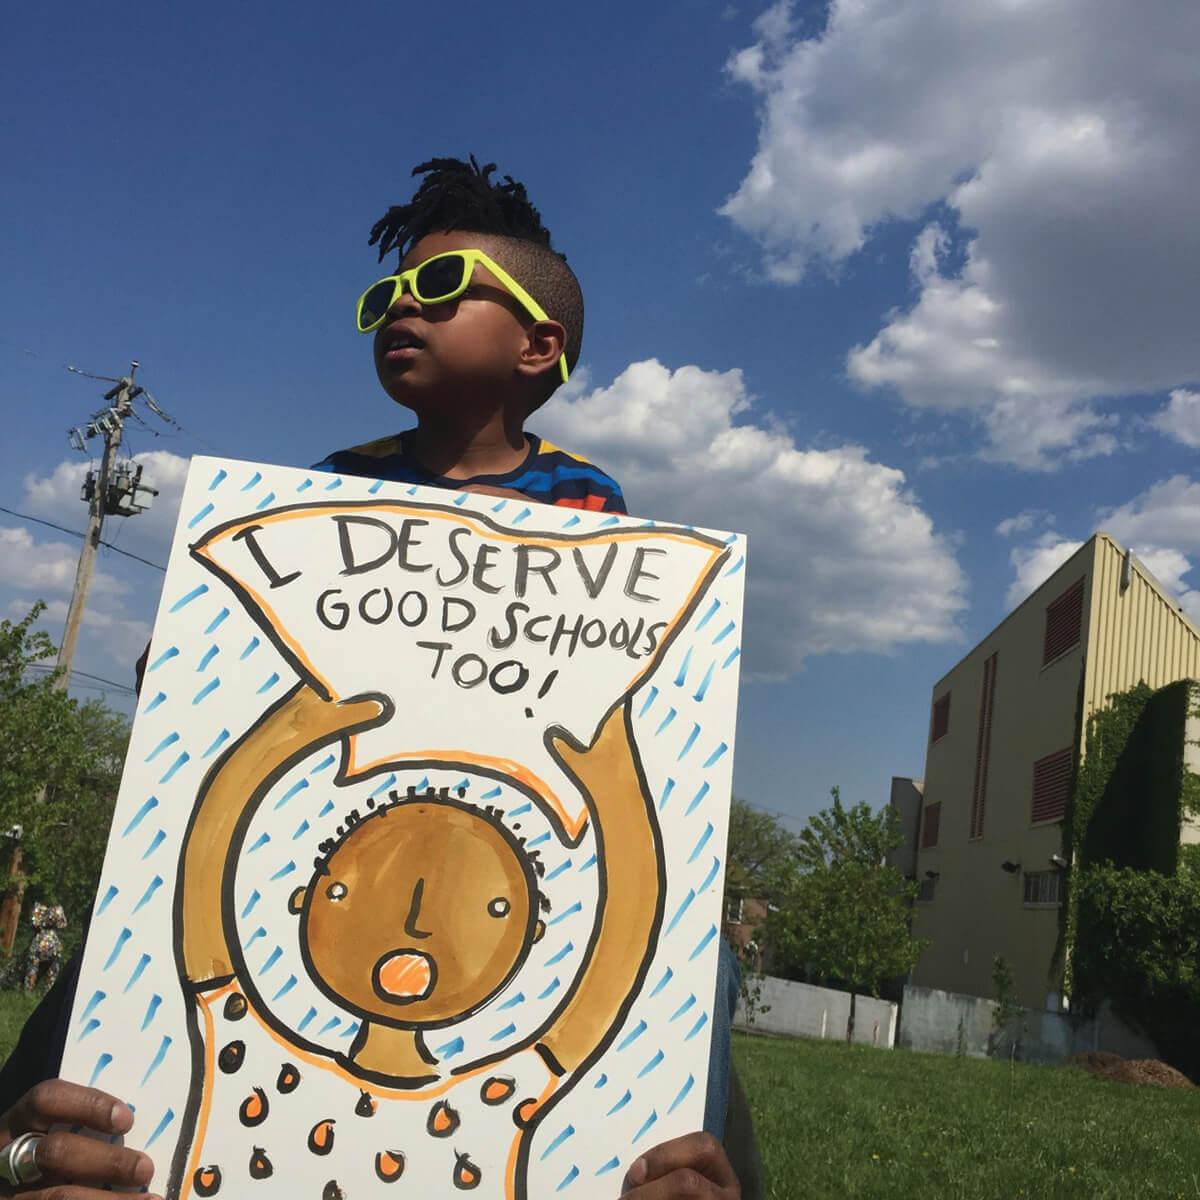 A young child holding a I deserve good schools too sign.